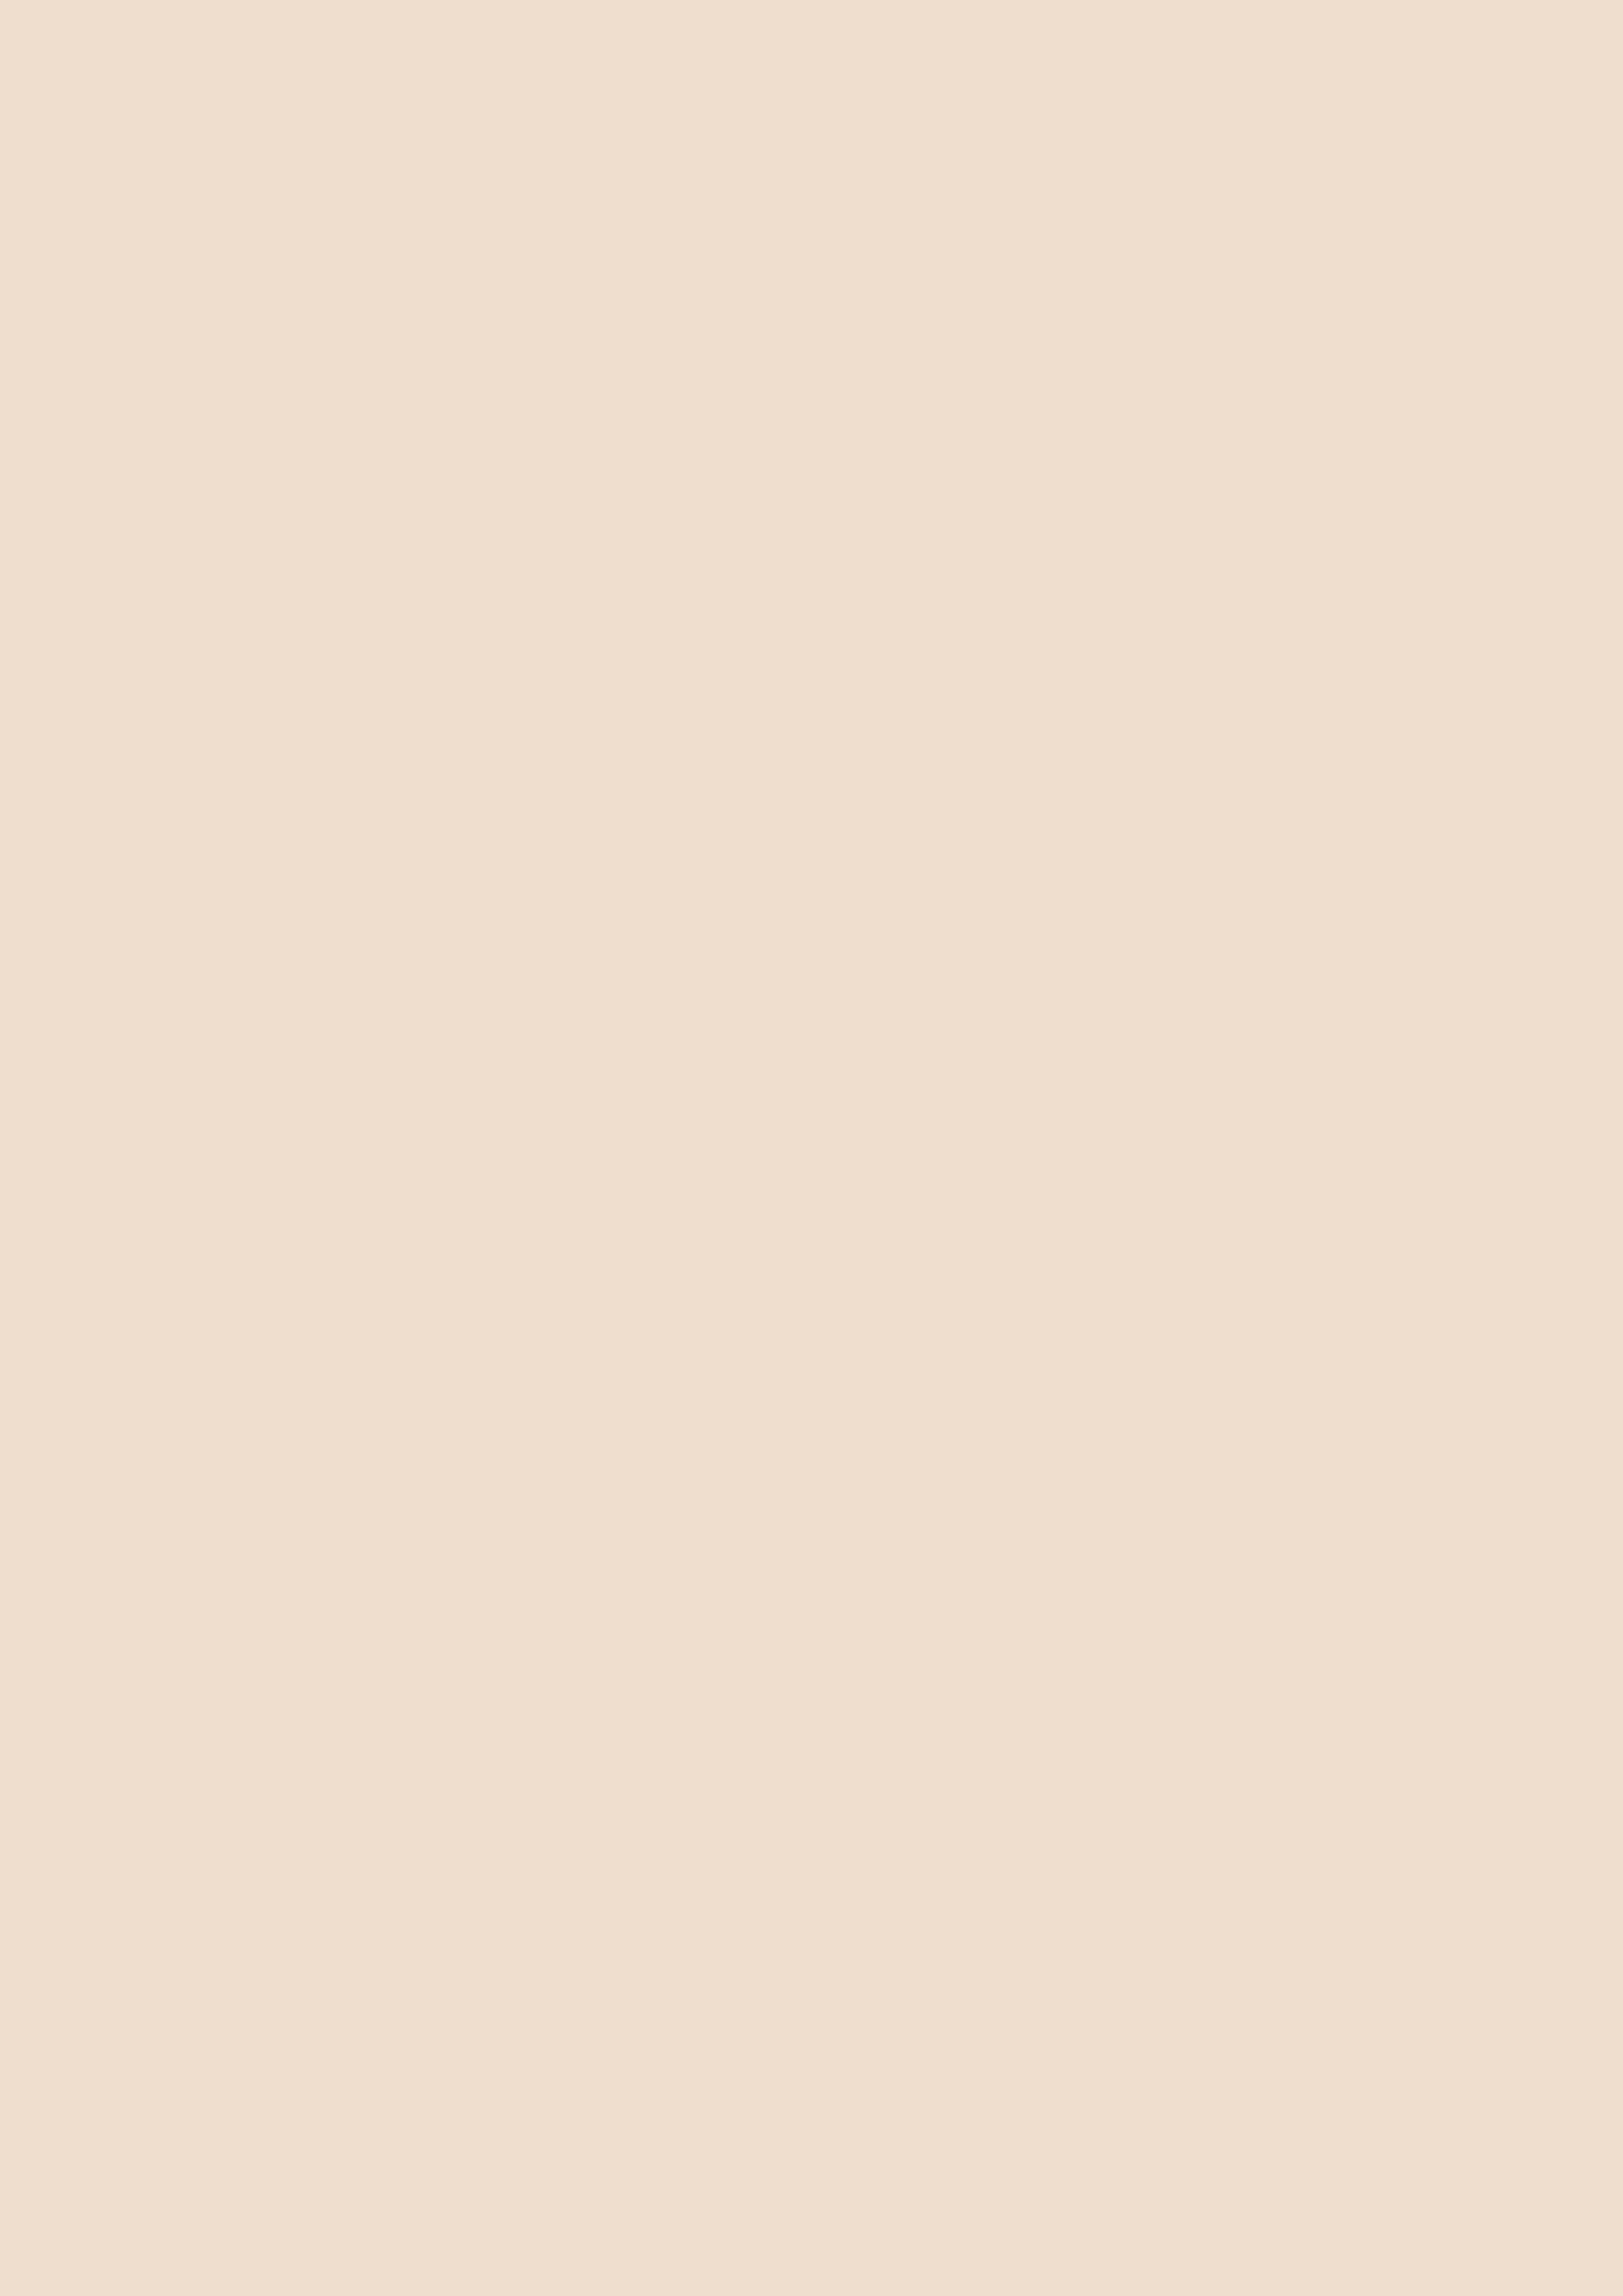 2480x3508 Almond Solid Color Background